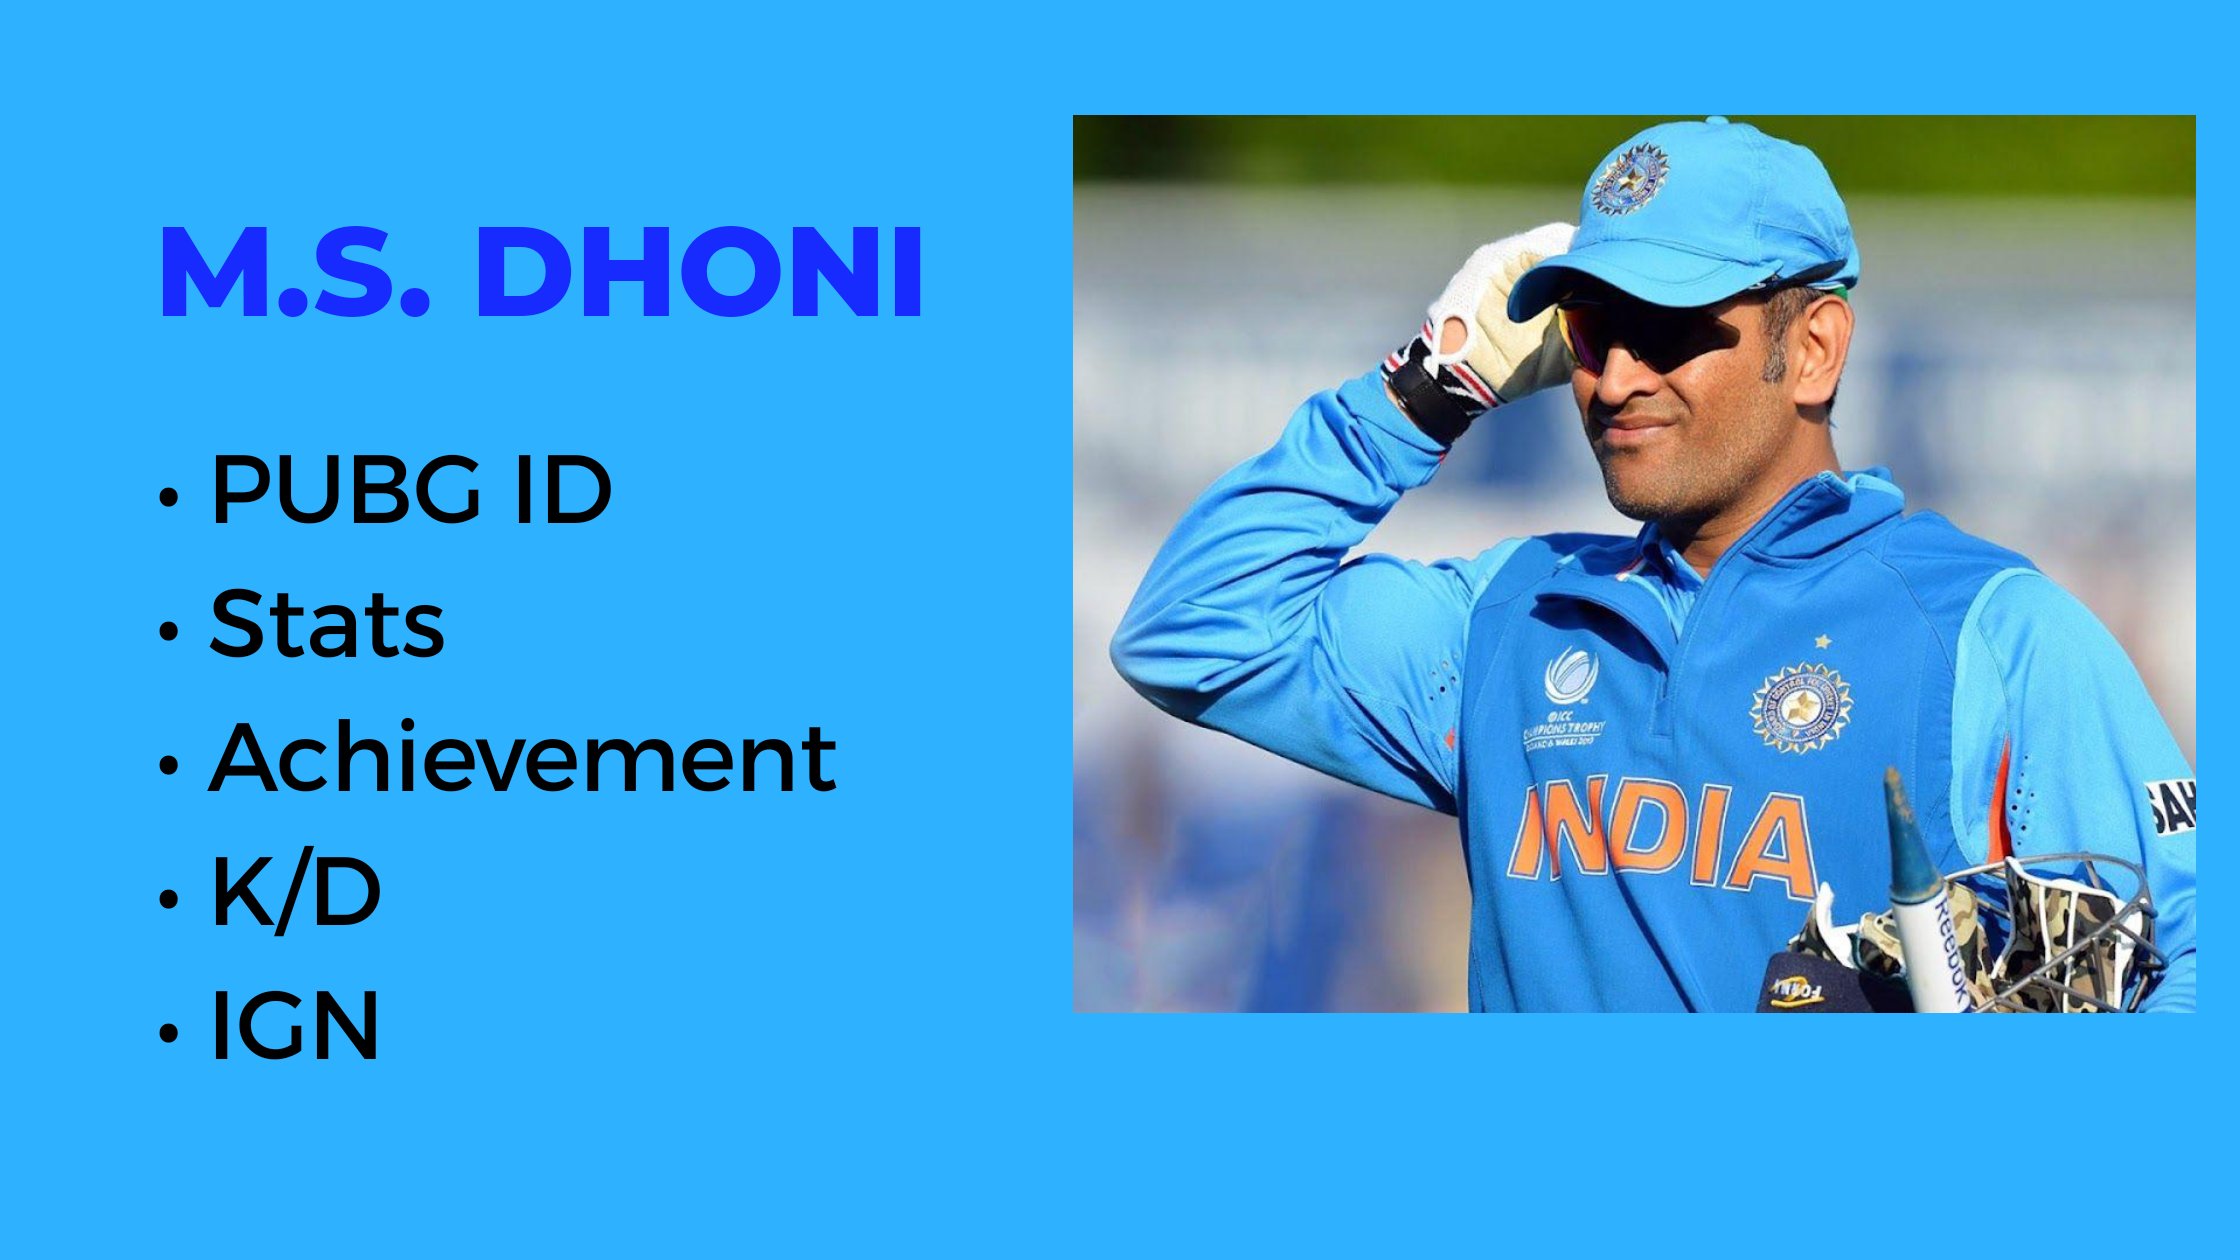 MS Dhoni PUBG ID, STATS, and Player Name